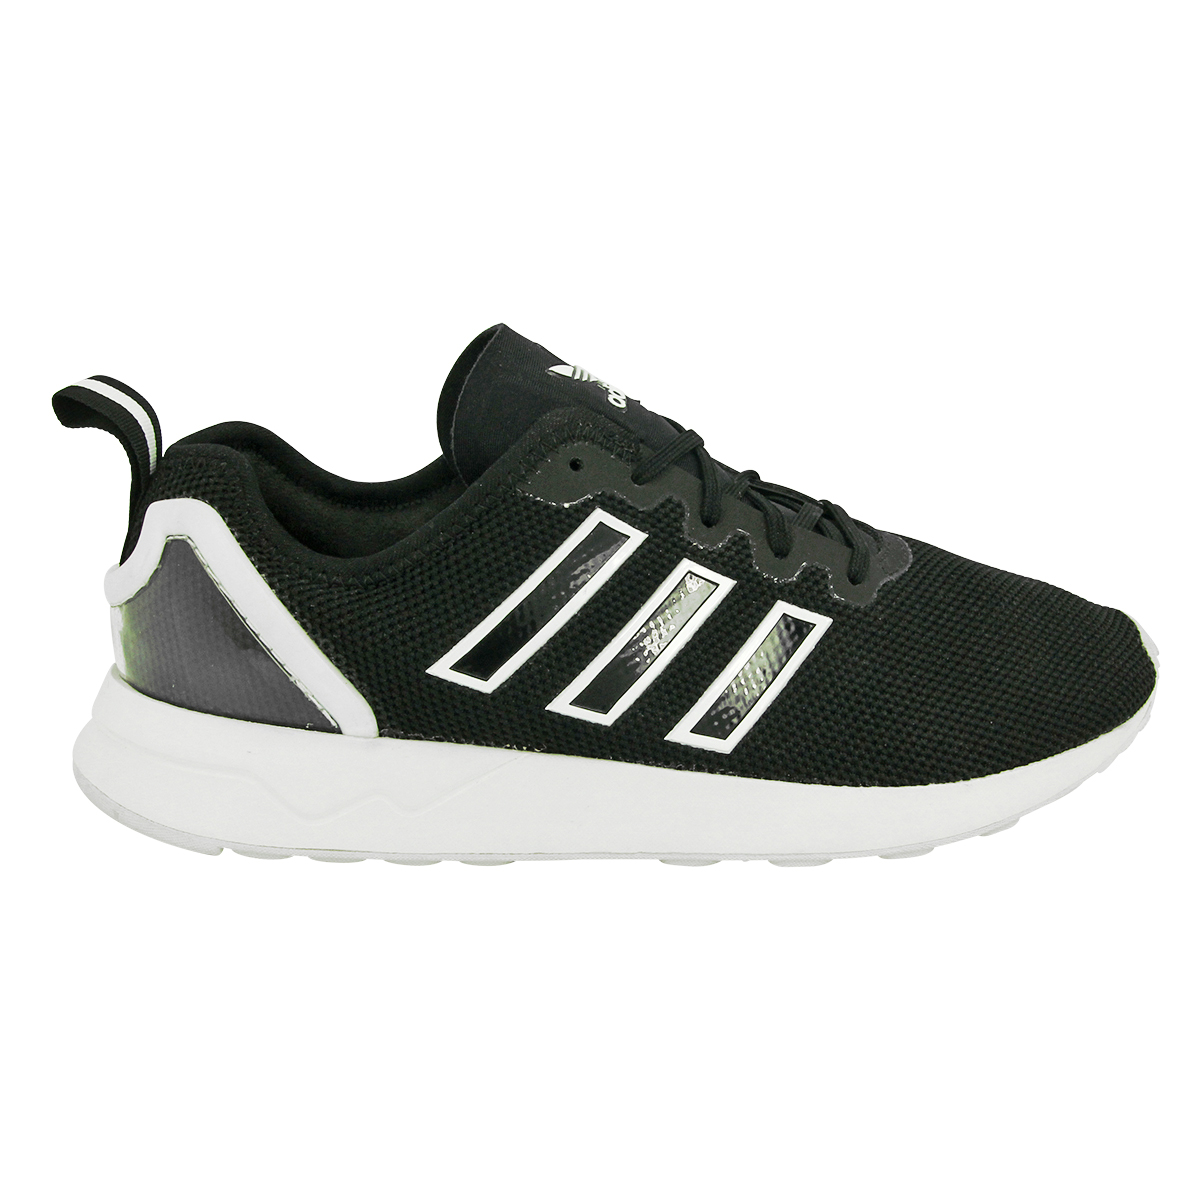 c3de151b6 Men s Shoes SNEAKERS adidas Originals ZX Flux ADV S79005 UK 10 5 for ...